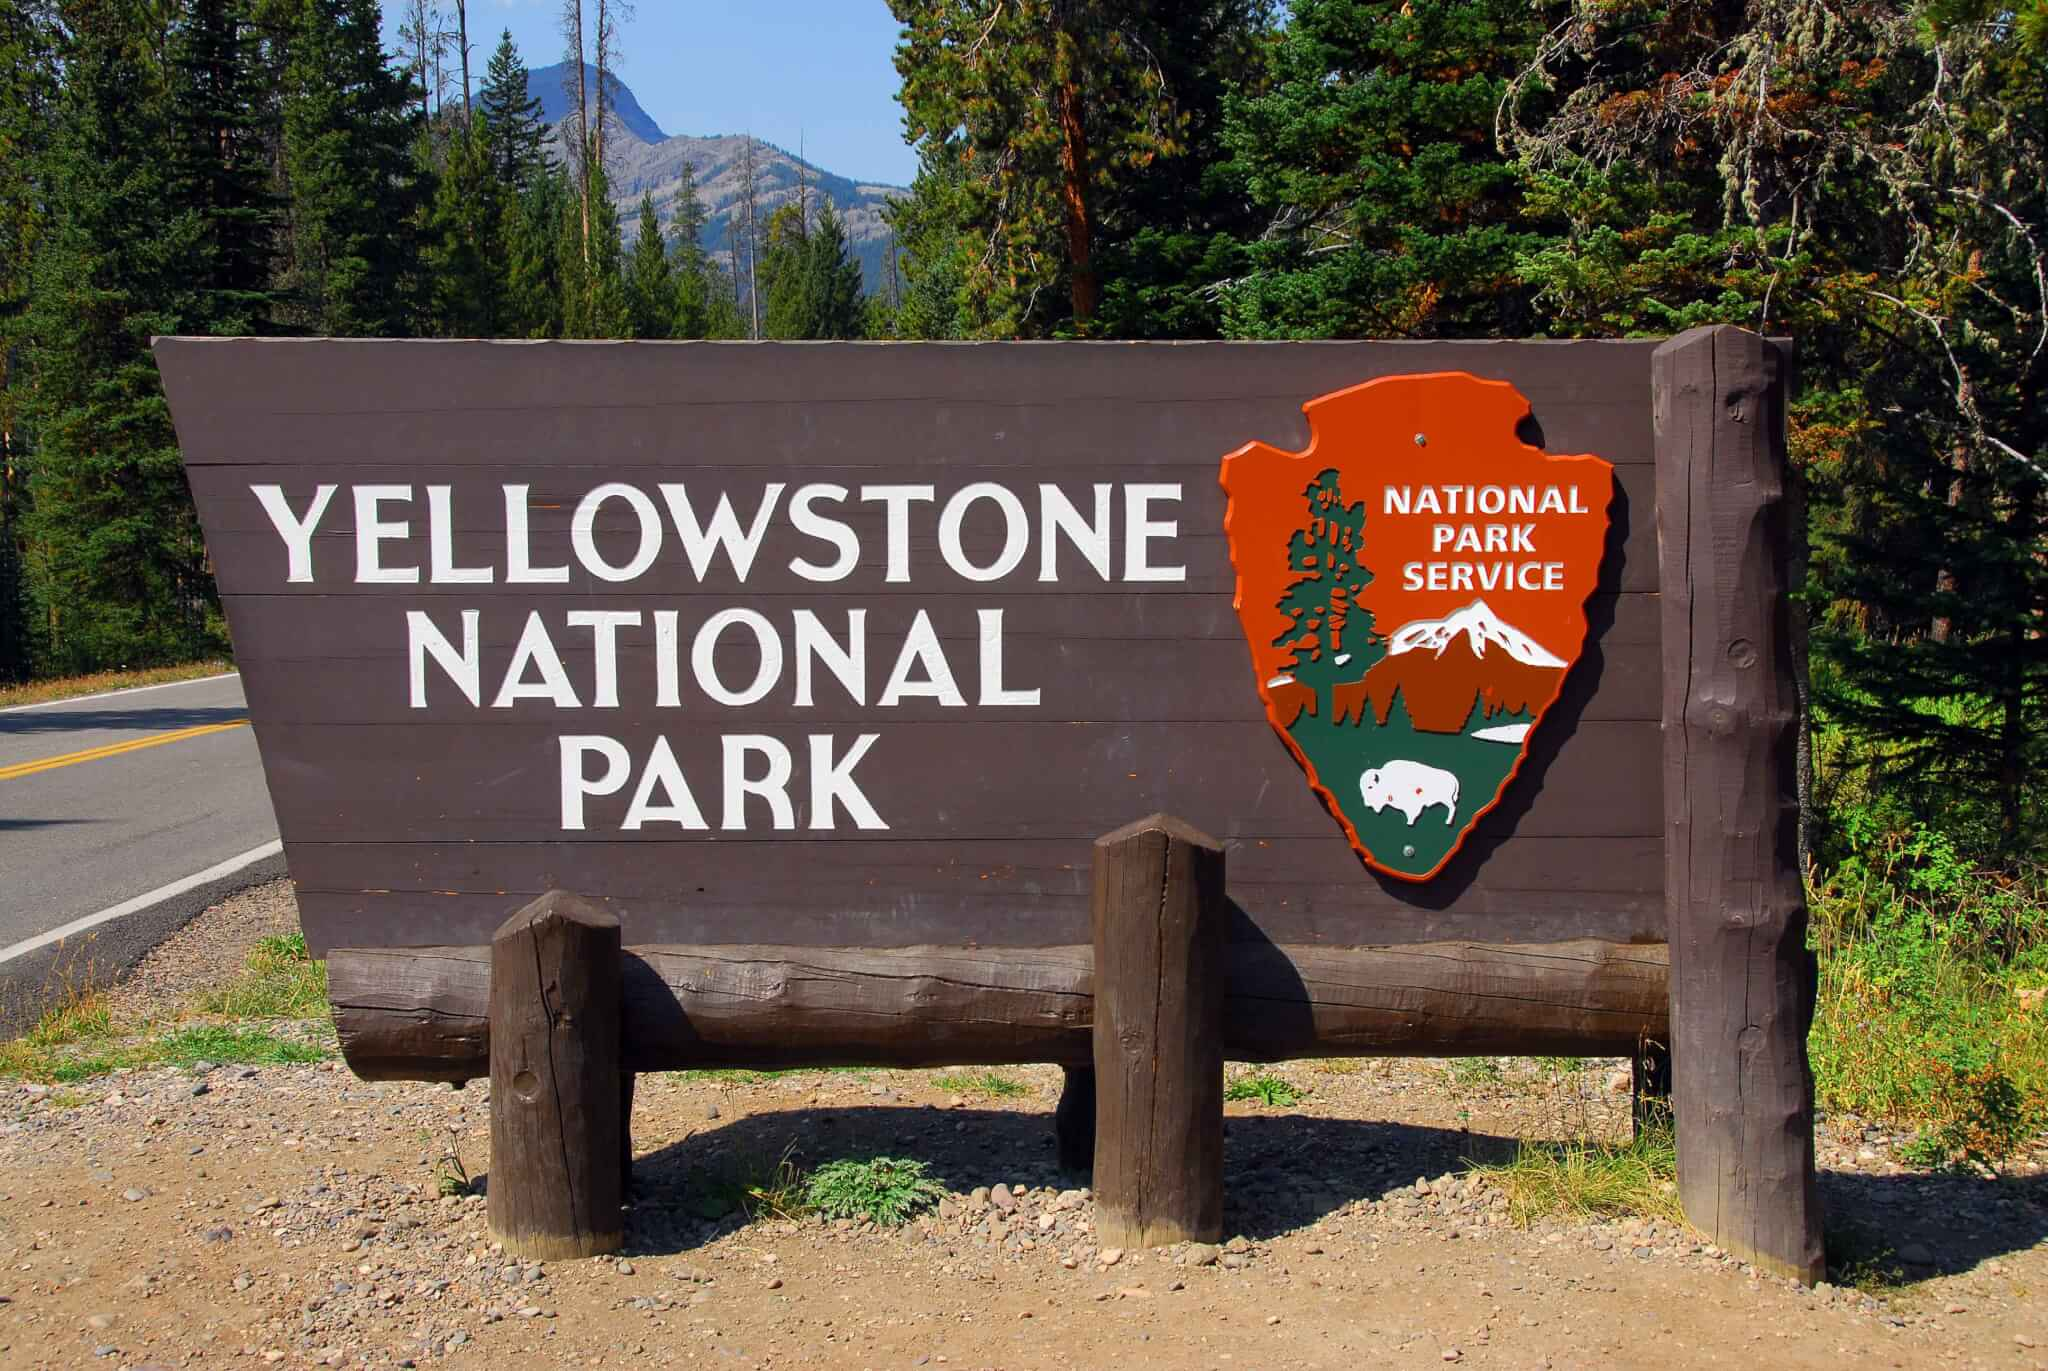 Yellowstone National Park Campsite Photos - Sign